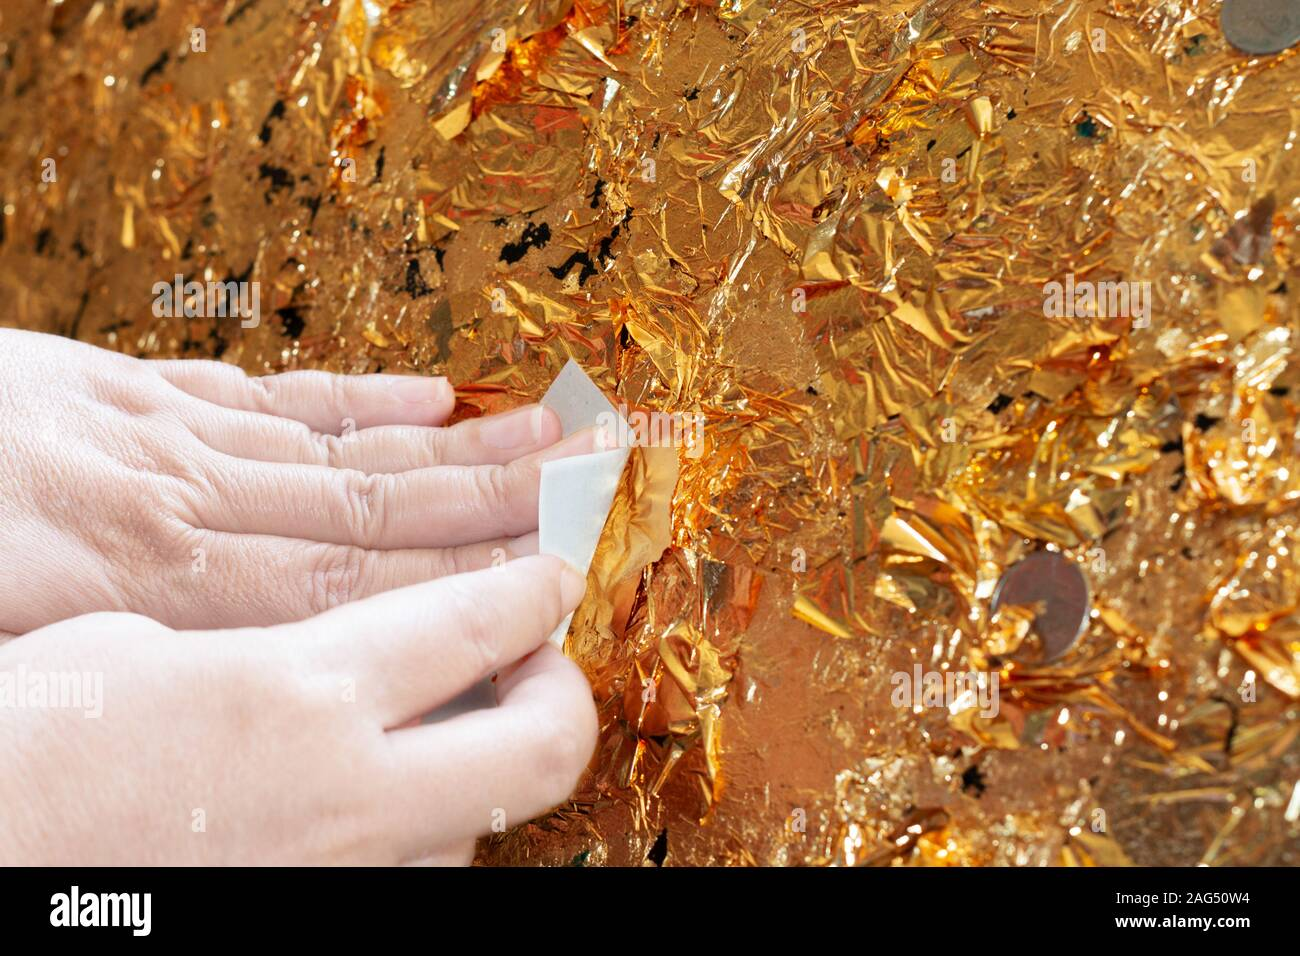 hand of buddhist gilding gold leaflet on golden ball in temple to worship buddha Stock Photo